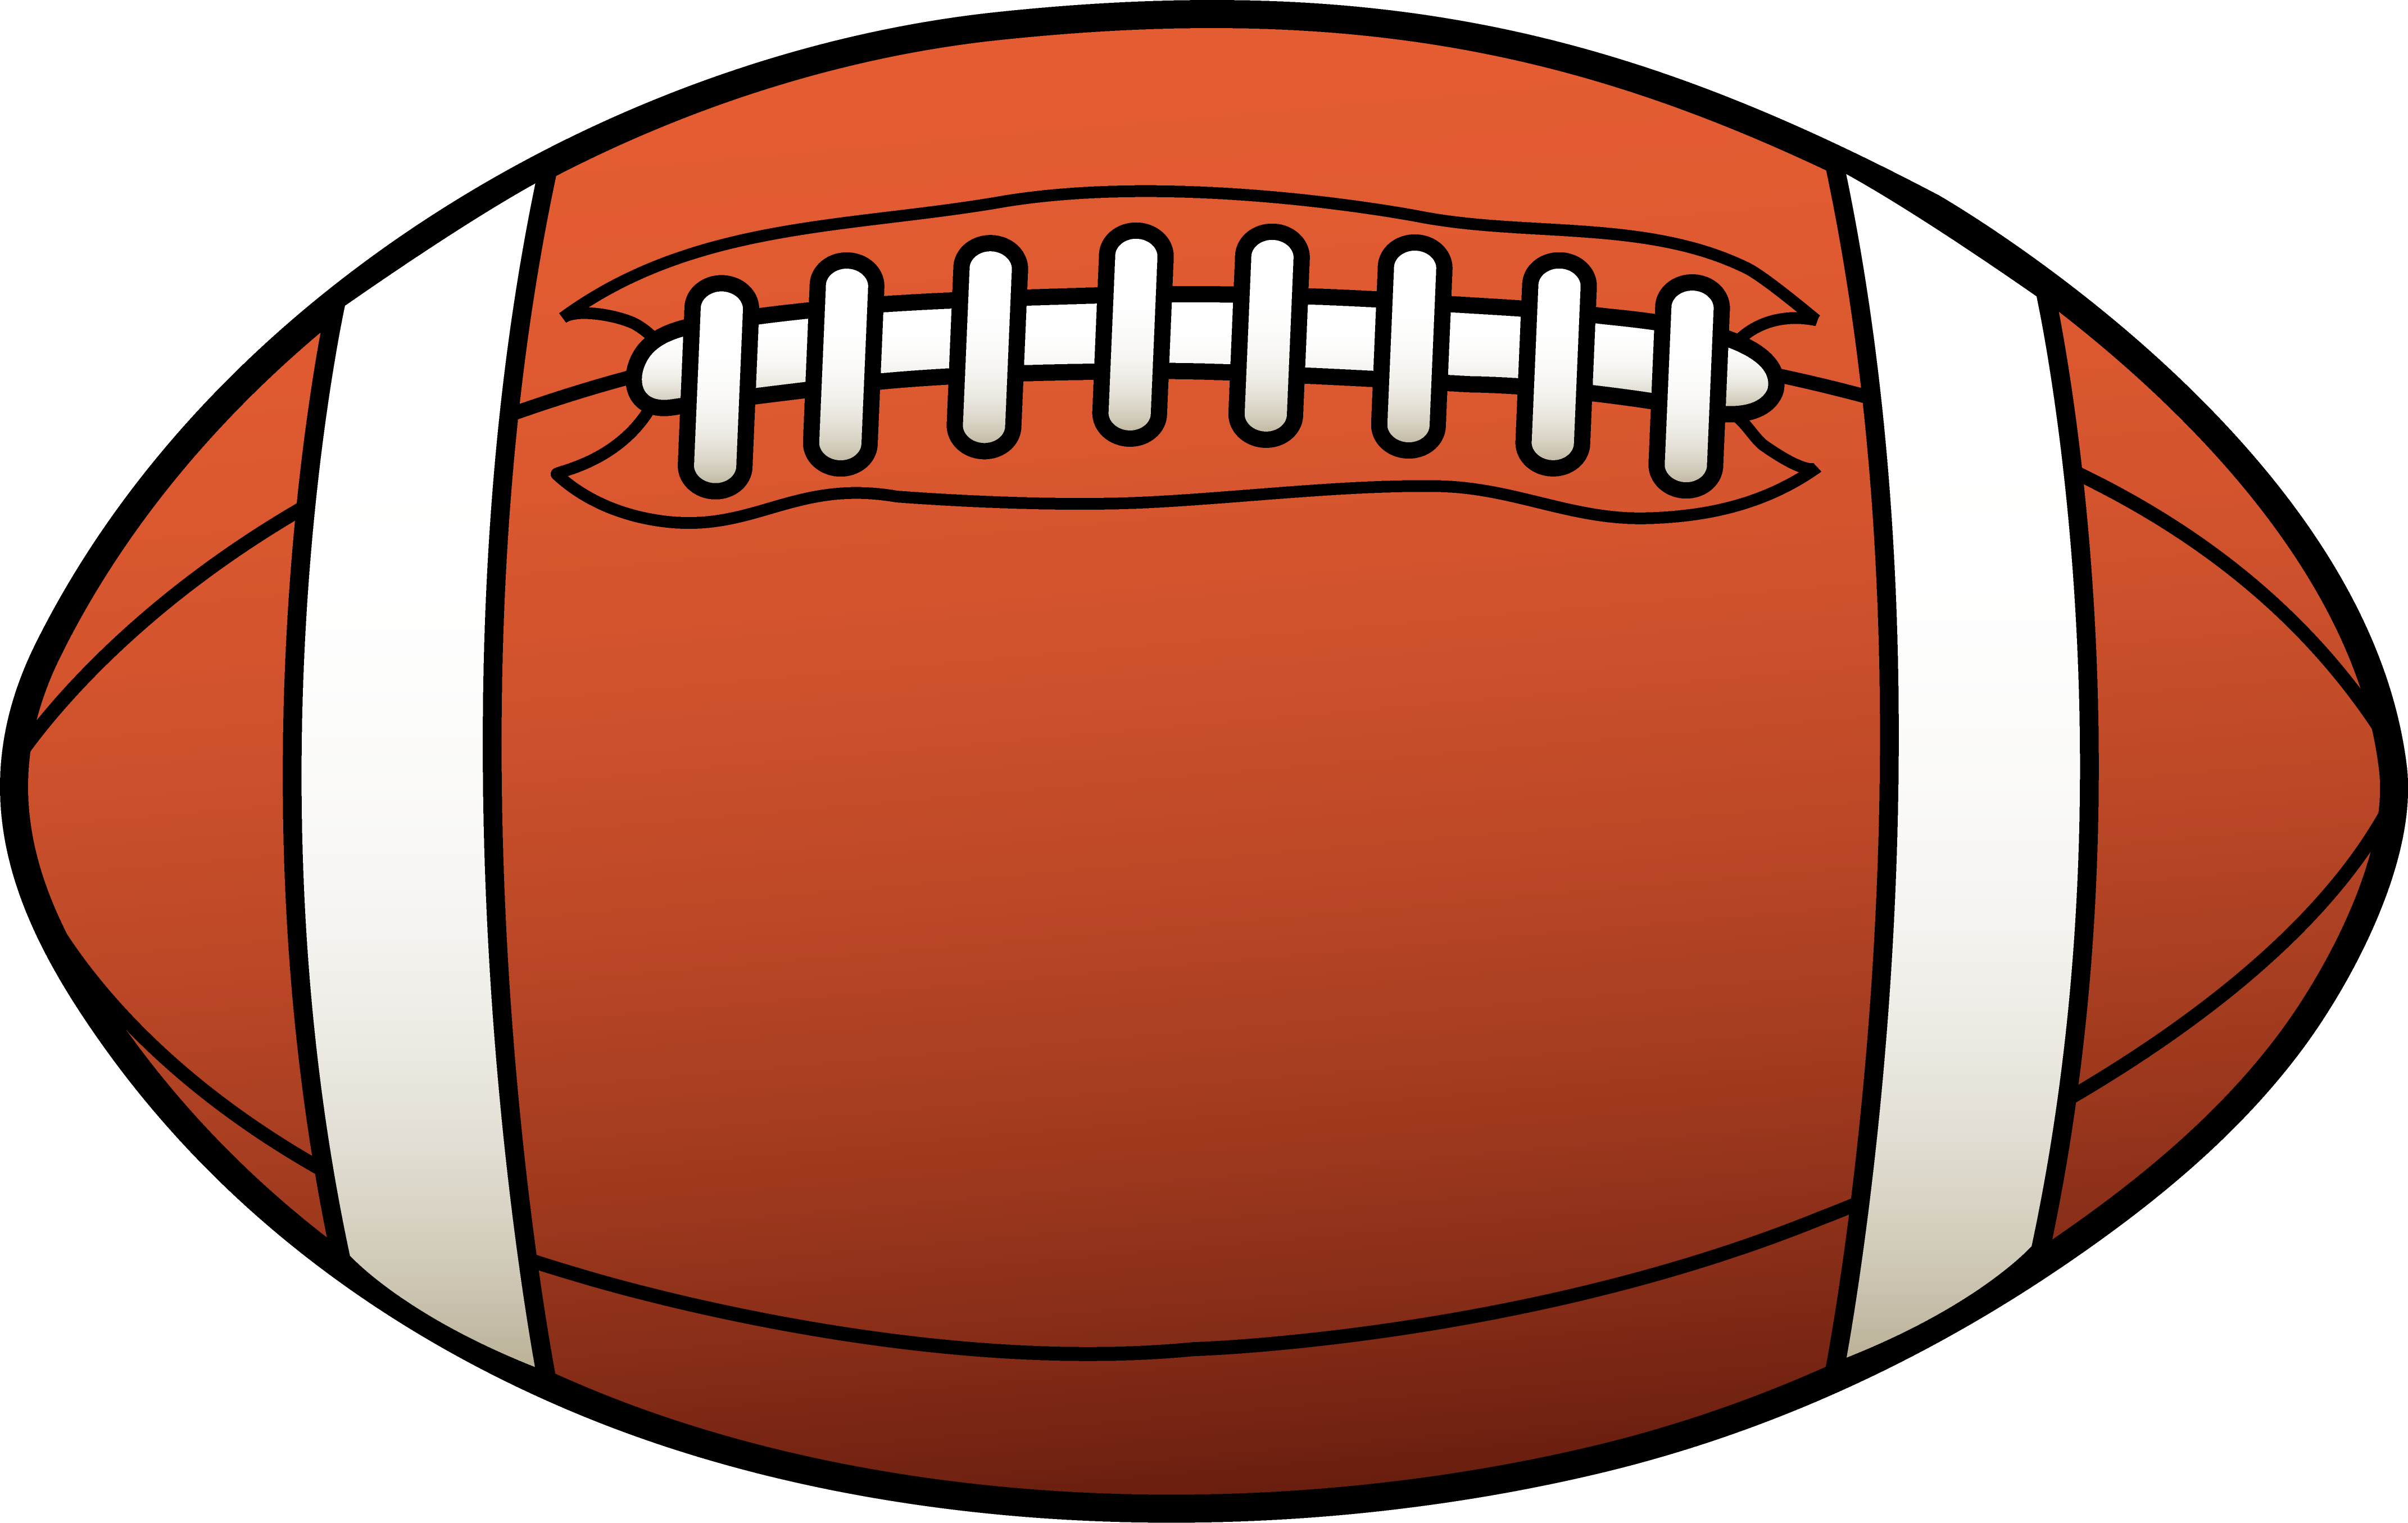 Rugby Ball Or American Football - Free C-Rugby Ball or American Football - Free Clip Art-15